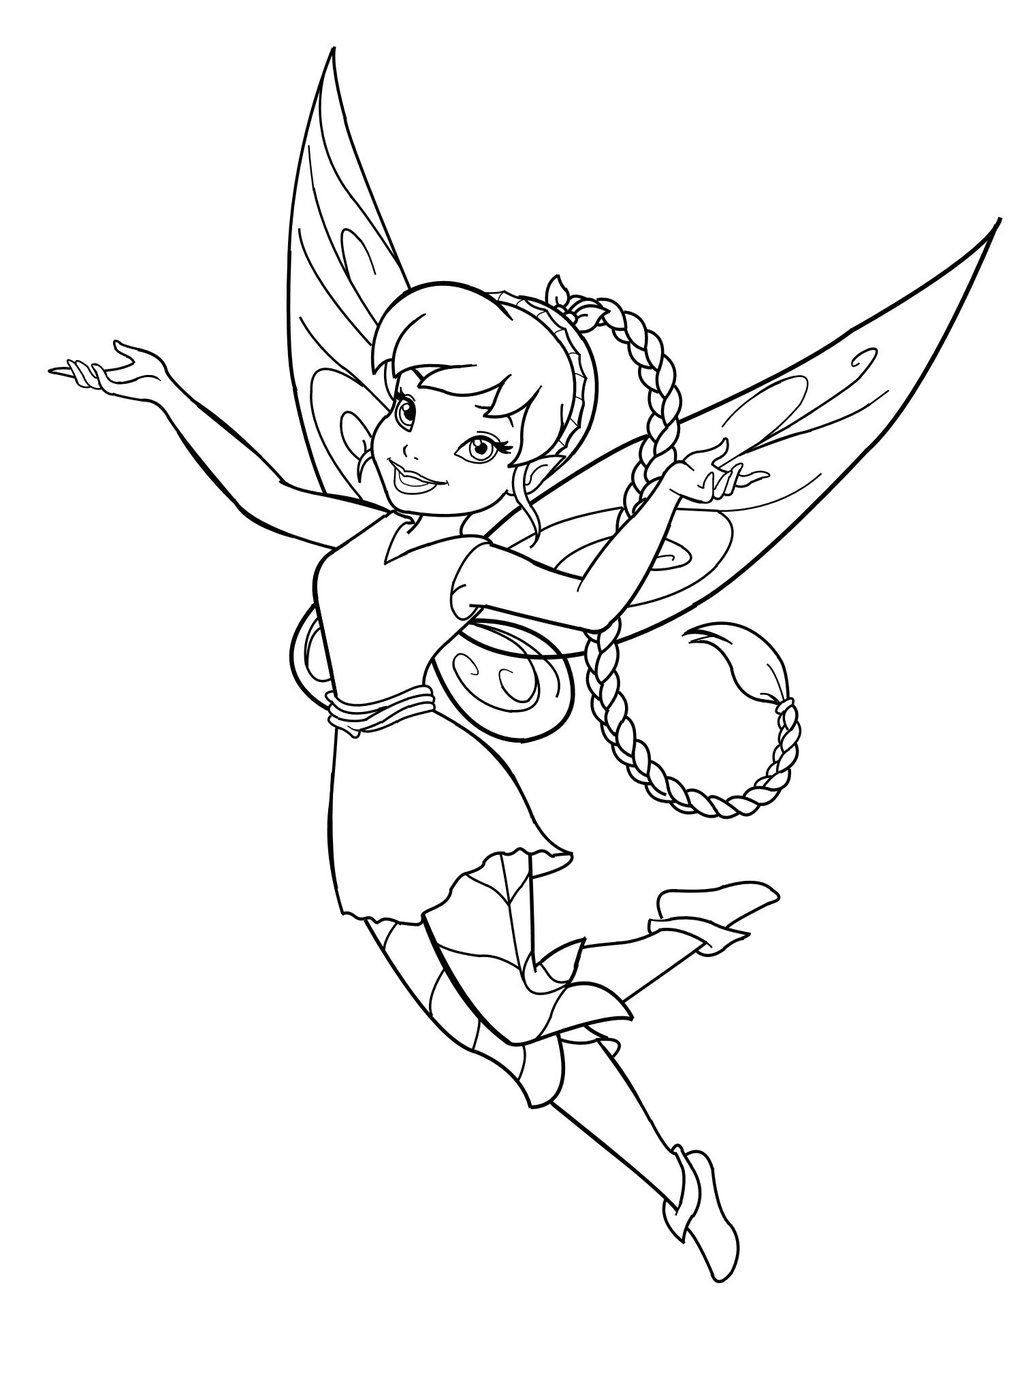 printable fairie coloring pages - photo#7